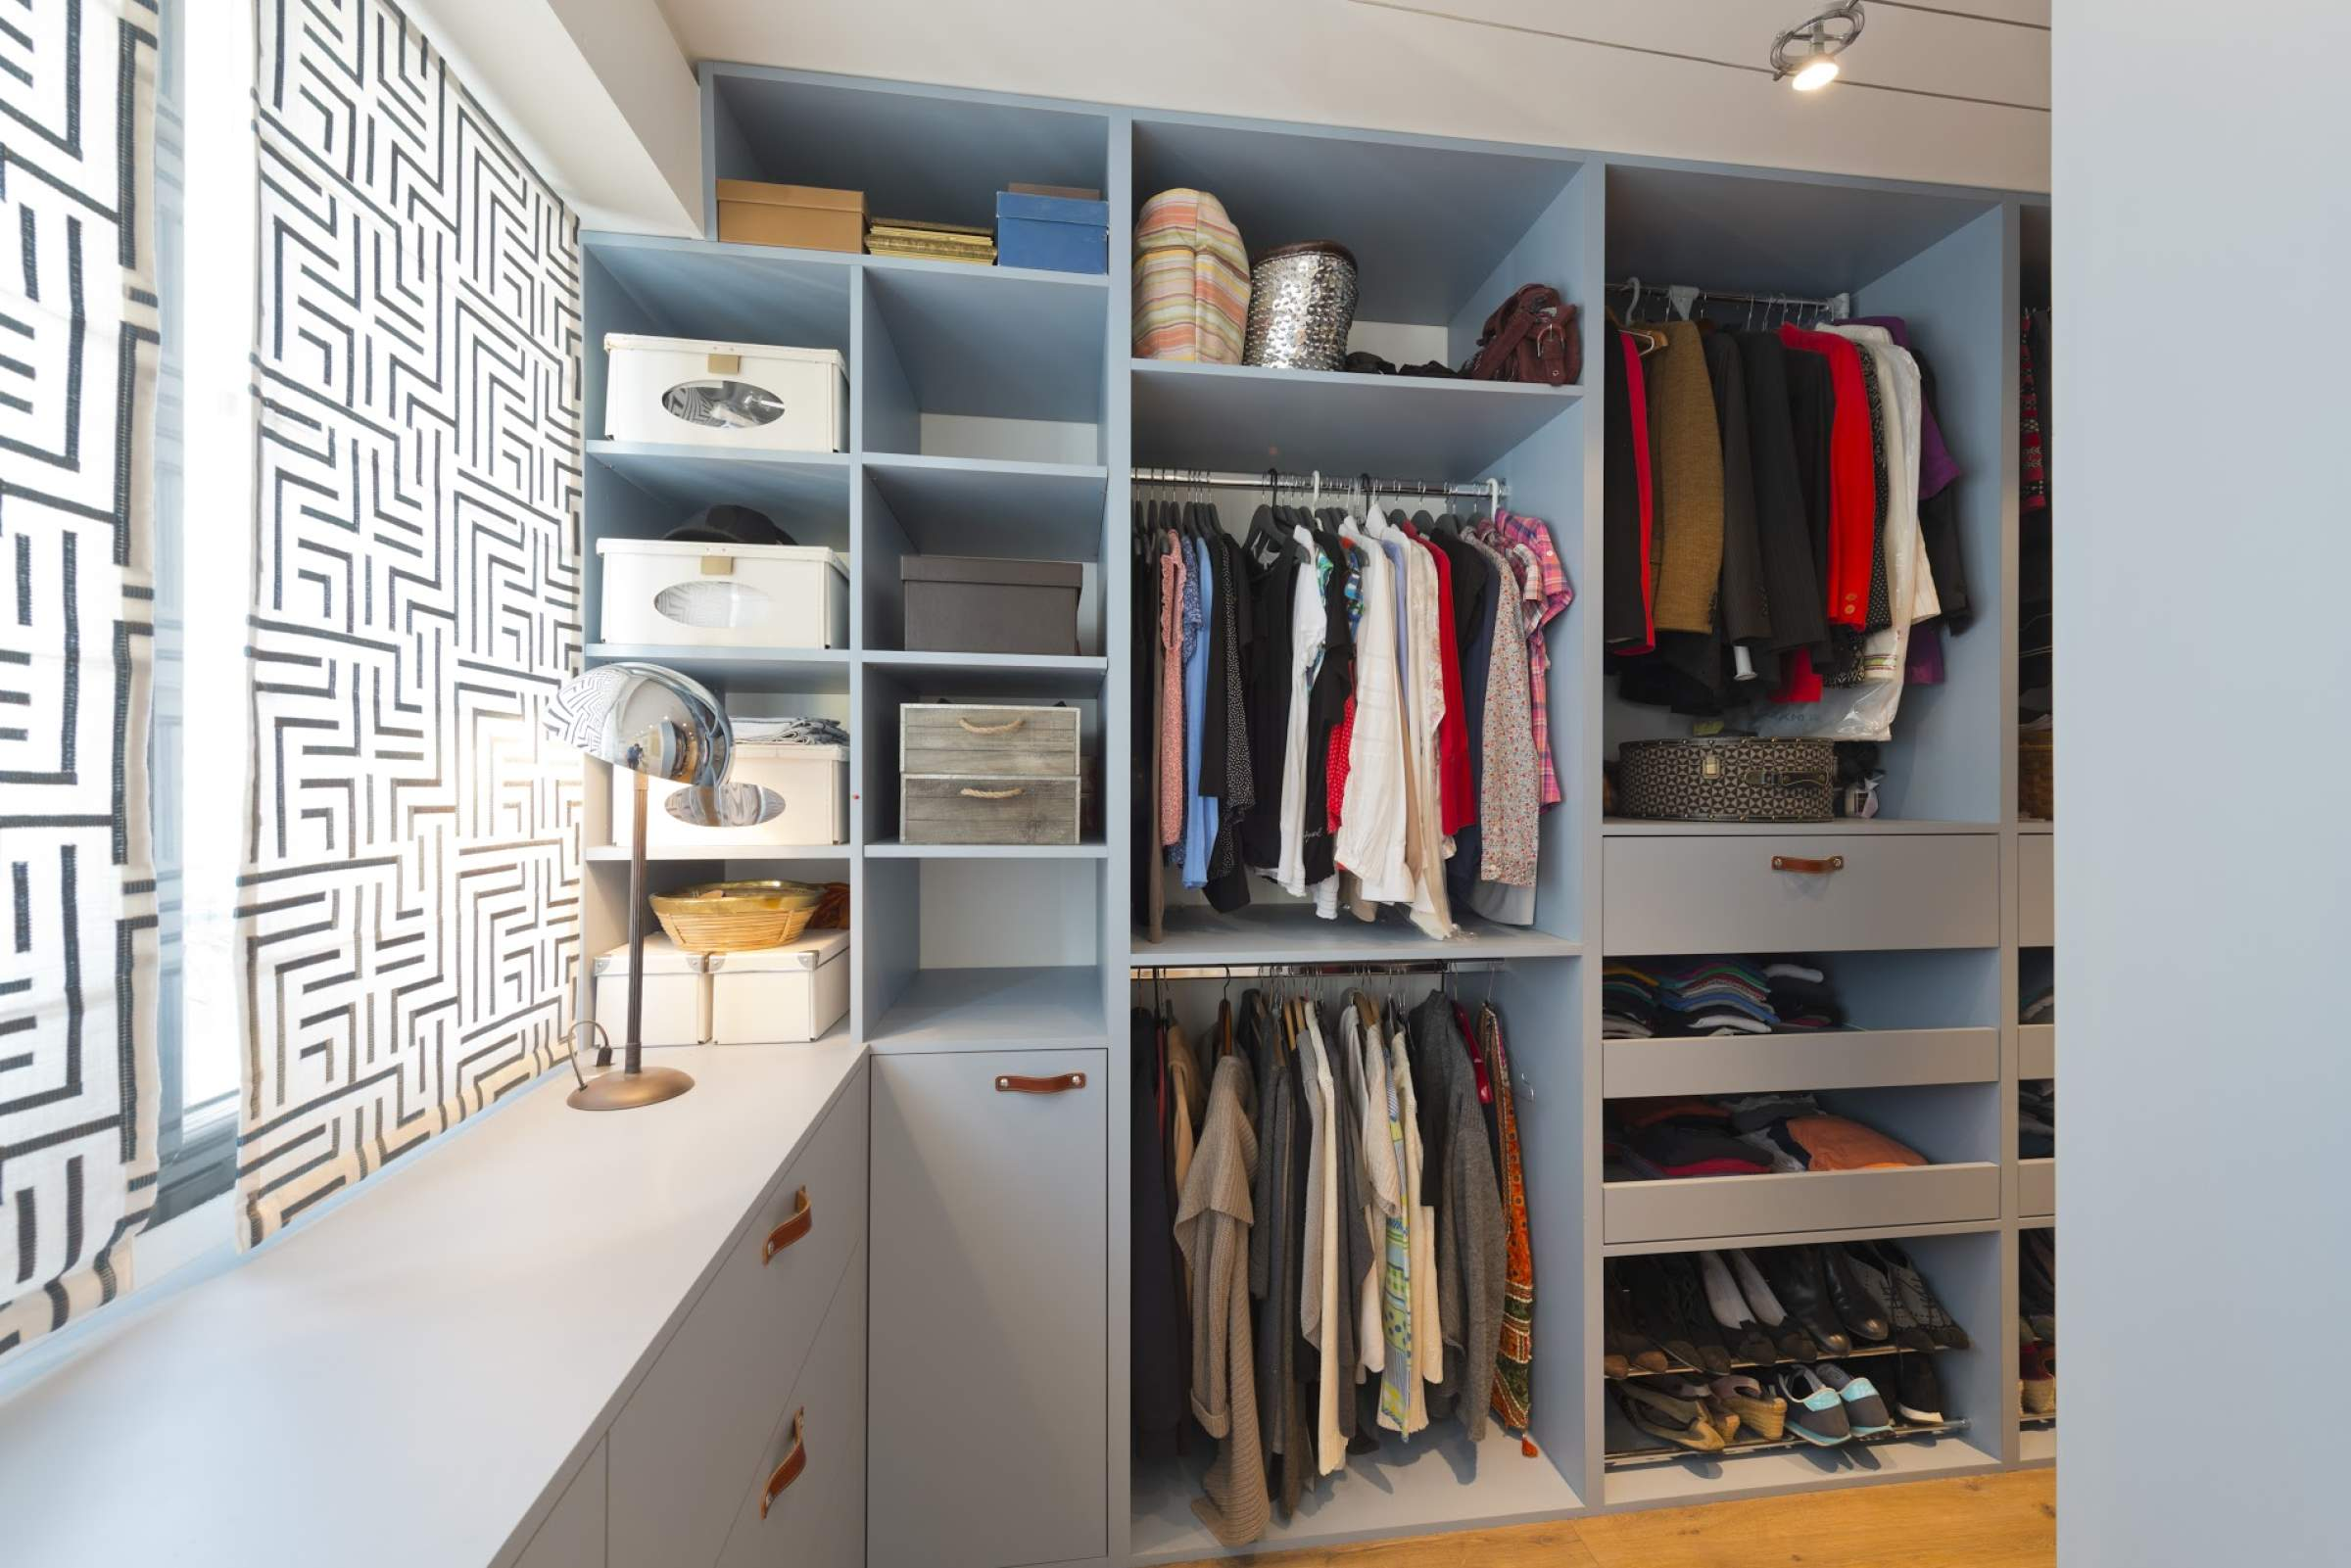 Take Advantage of the Entire Vertical Space